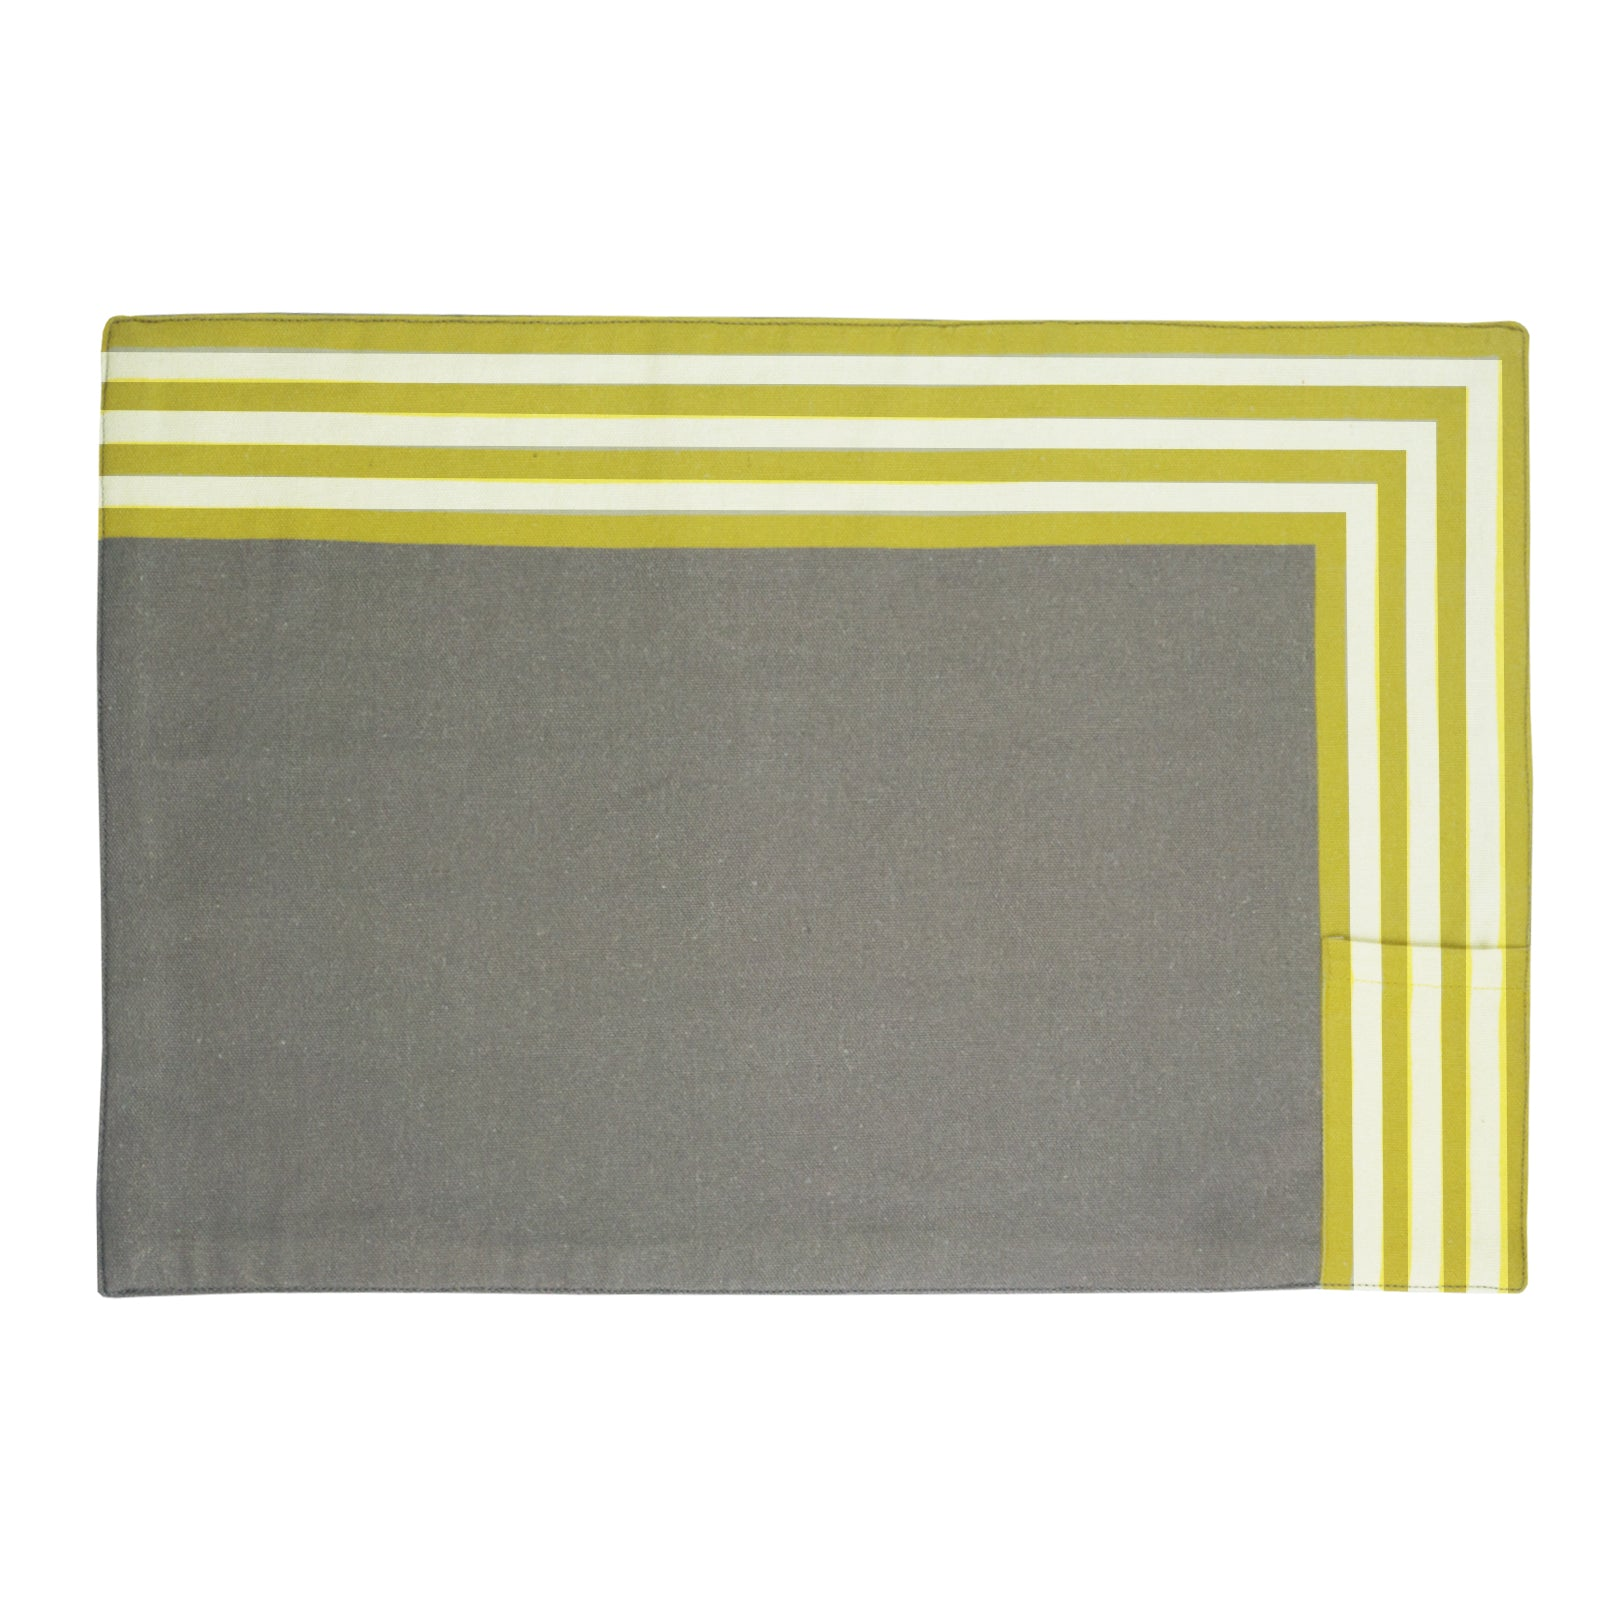 Sunrise Yellow Table Mats. Set of 4. 100% cotton. Borderline PLAY